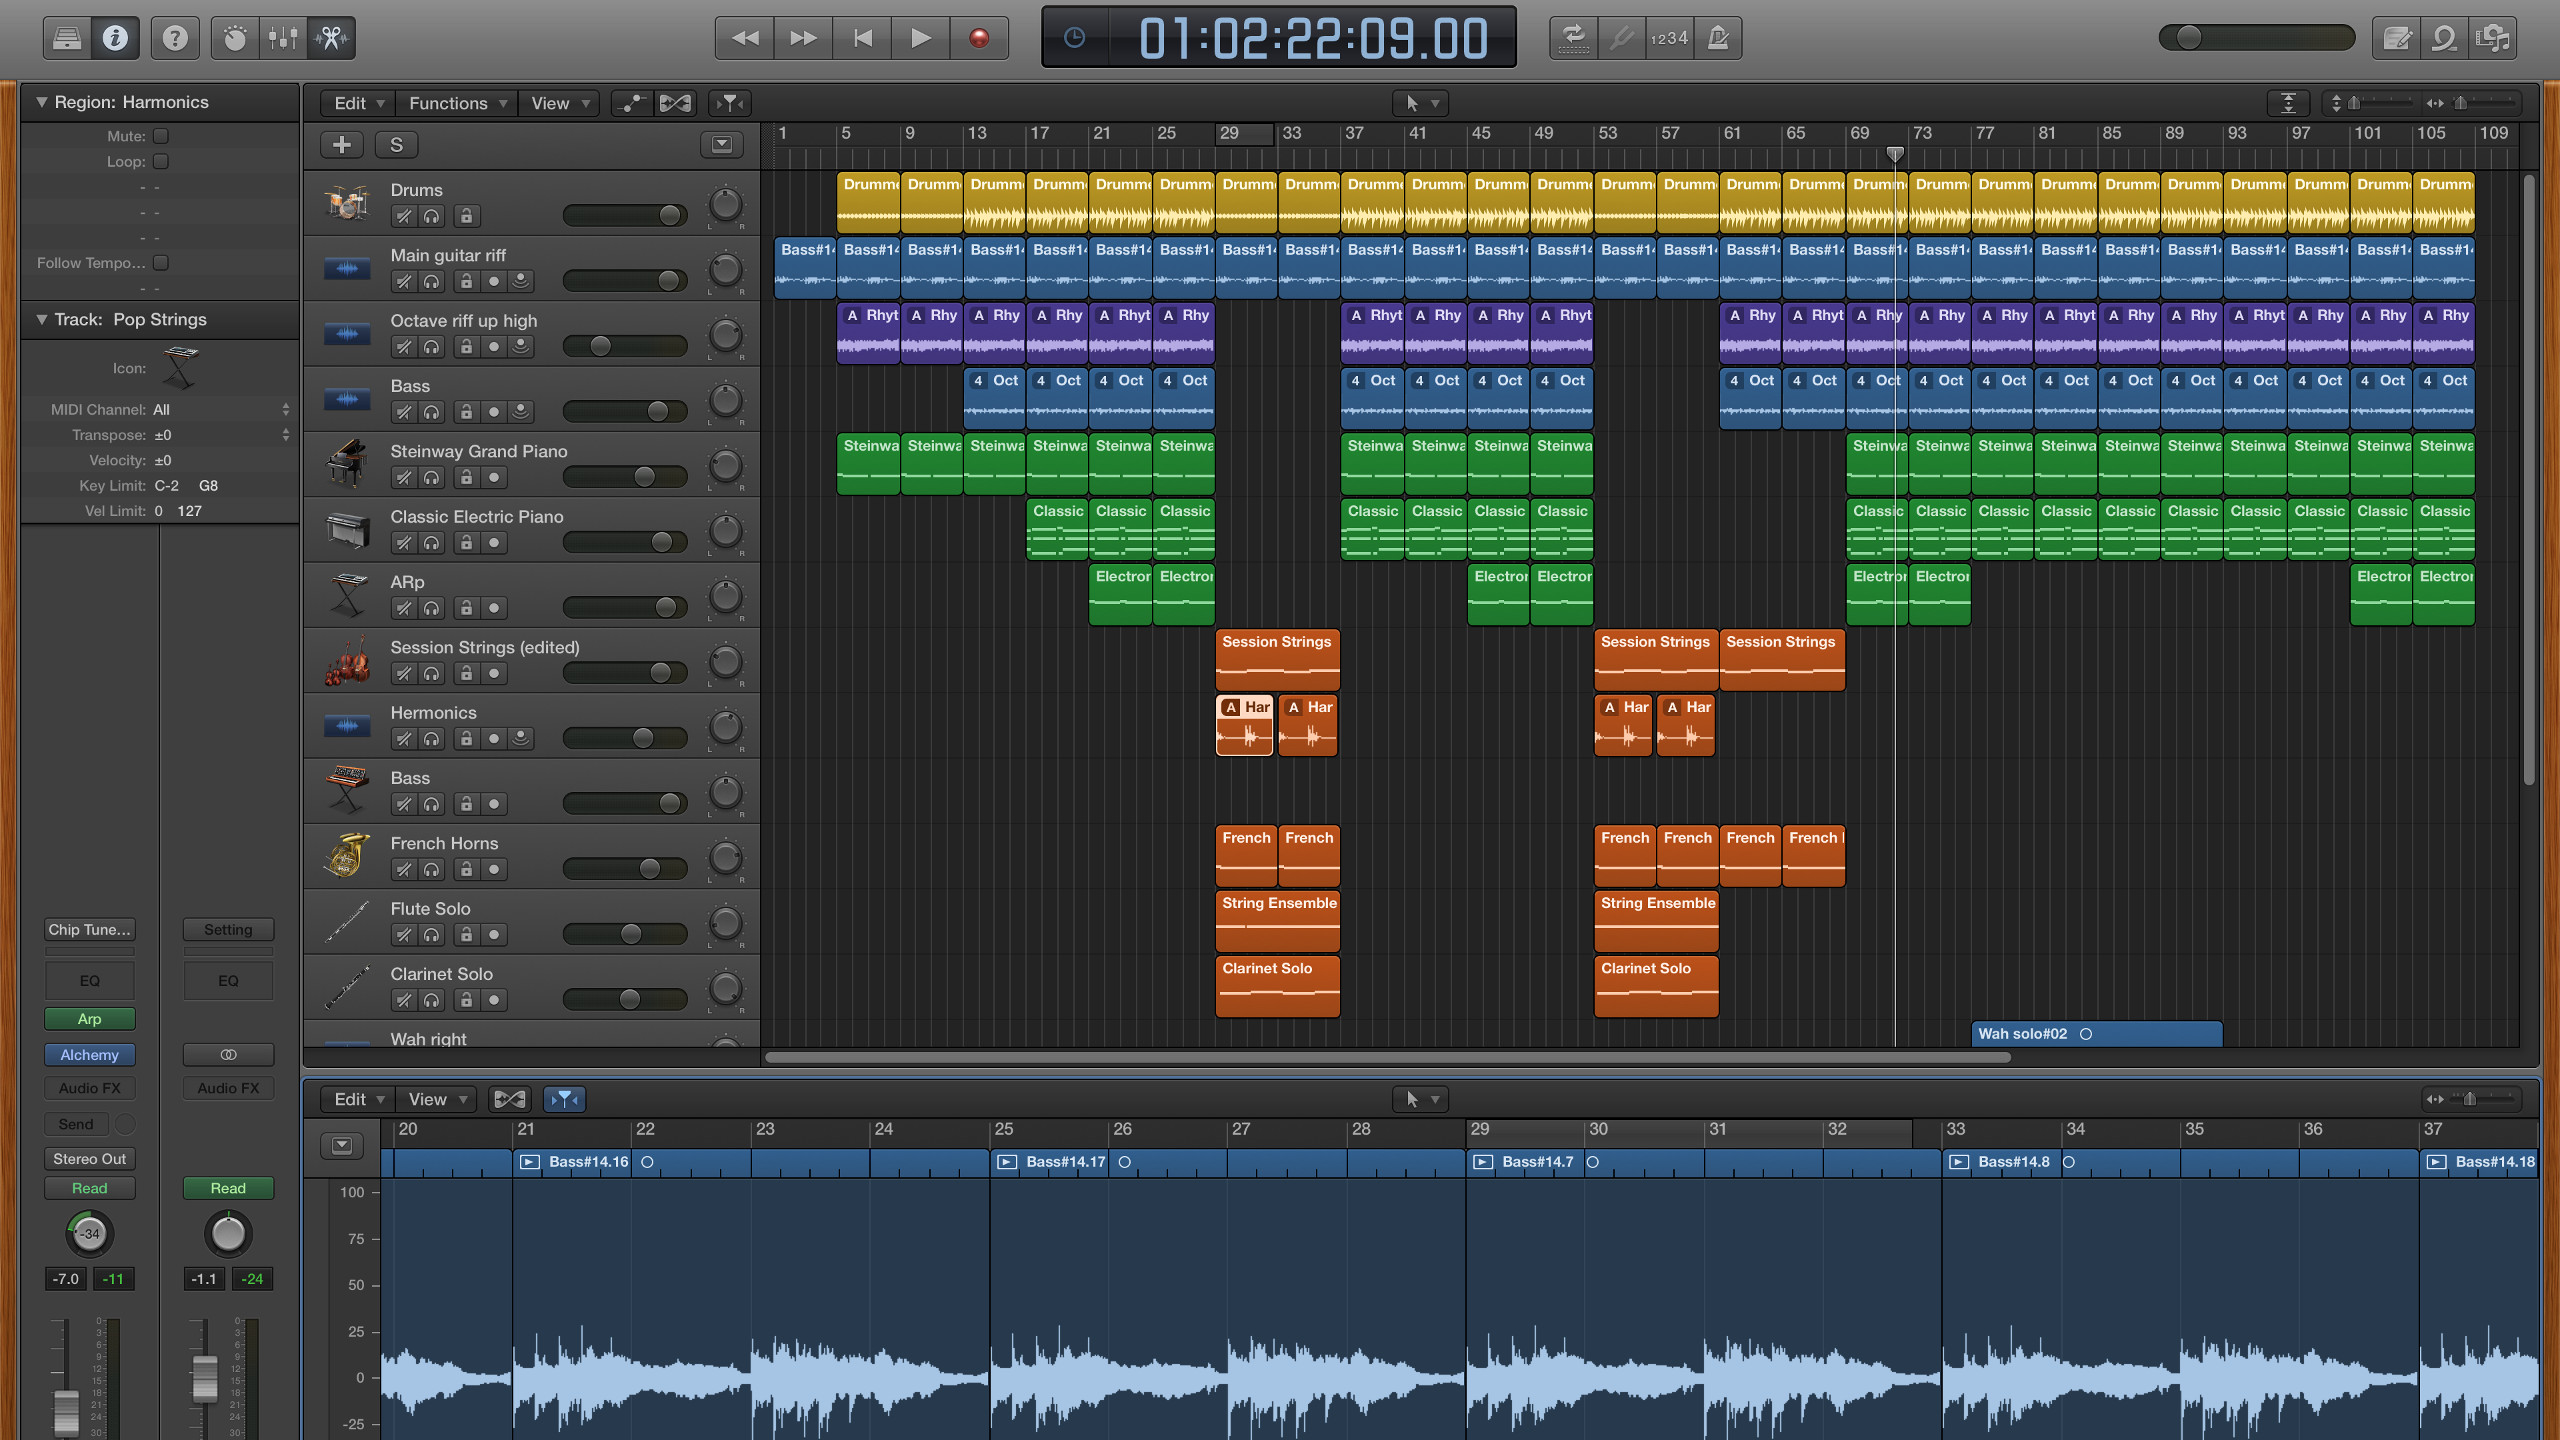 Fan Garageband 5 Killer Logic Pro X Features That Convinced Me To Ditch